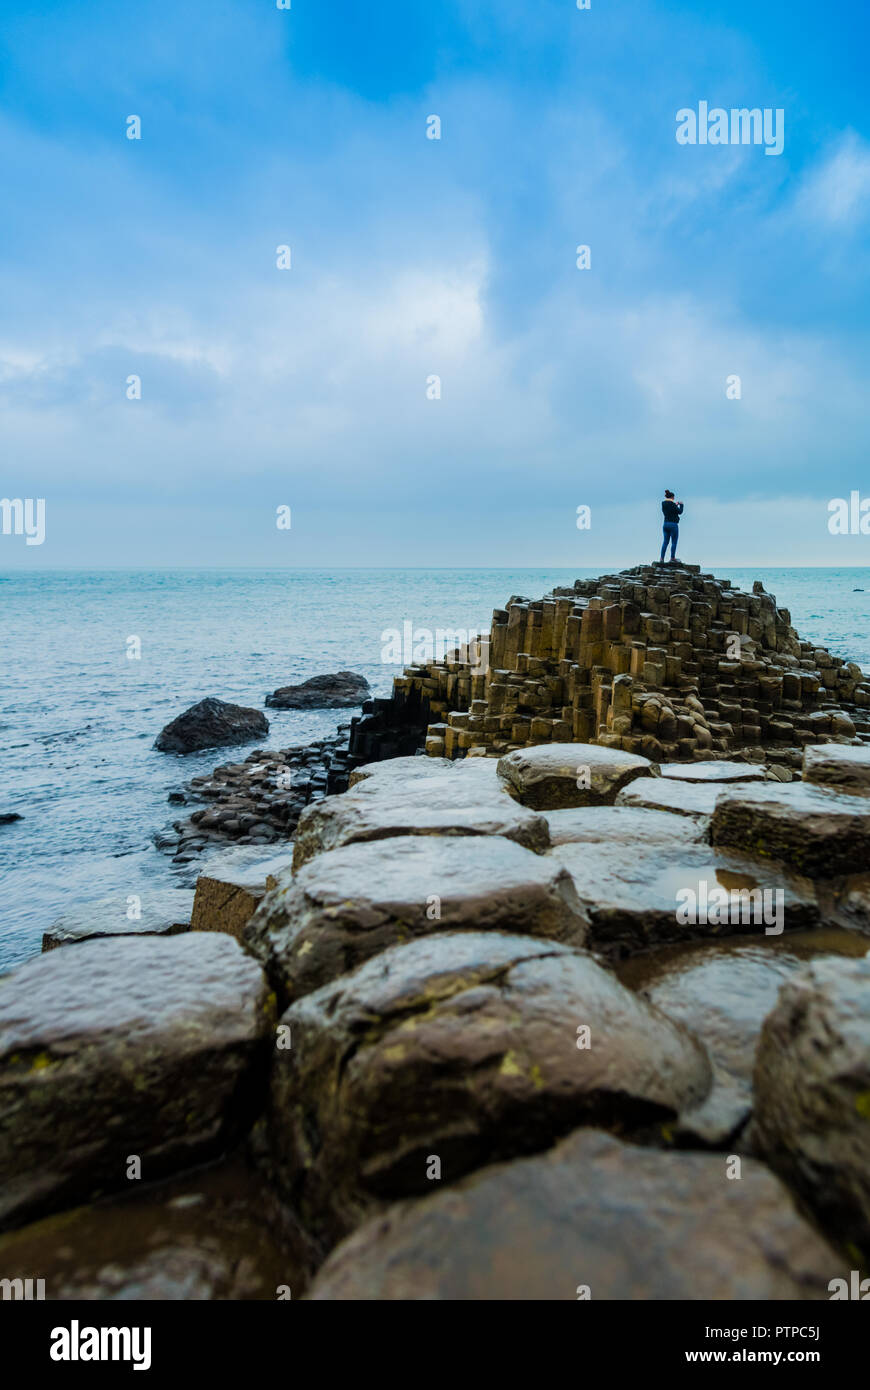 Tourists taking pictures on the famous Giants' Causeway stones in Northern ireland - Stock Image